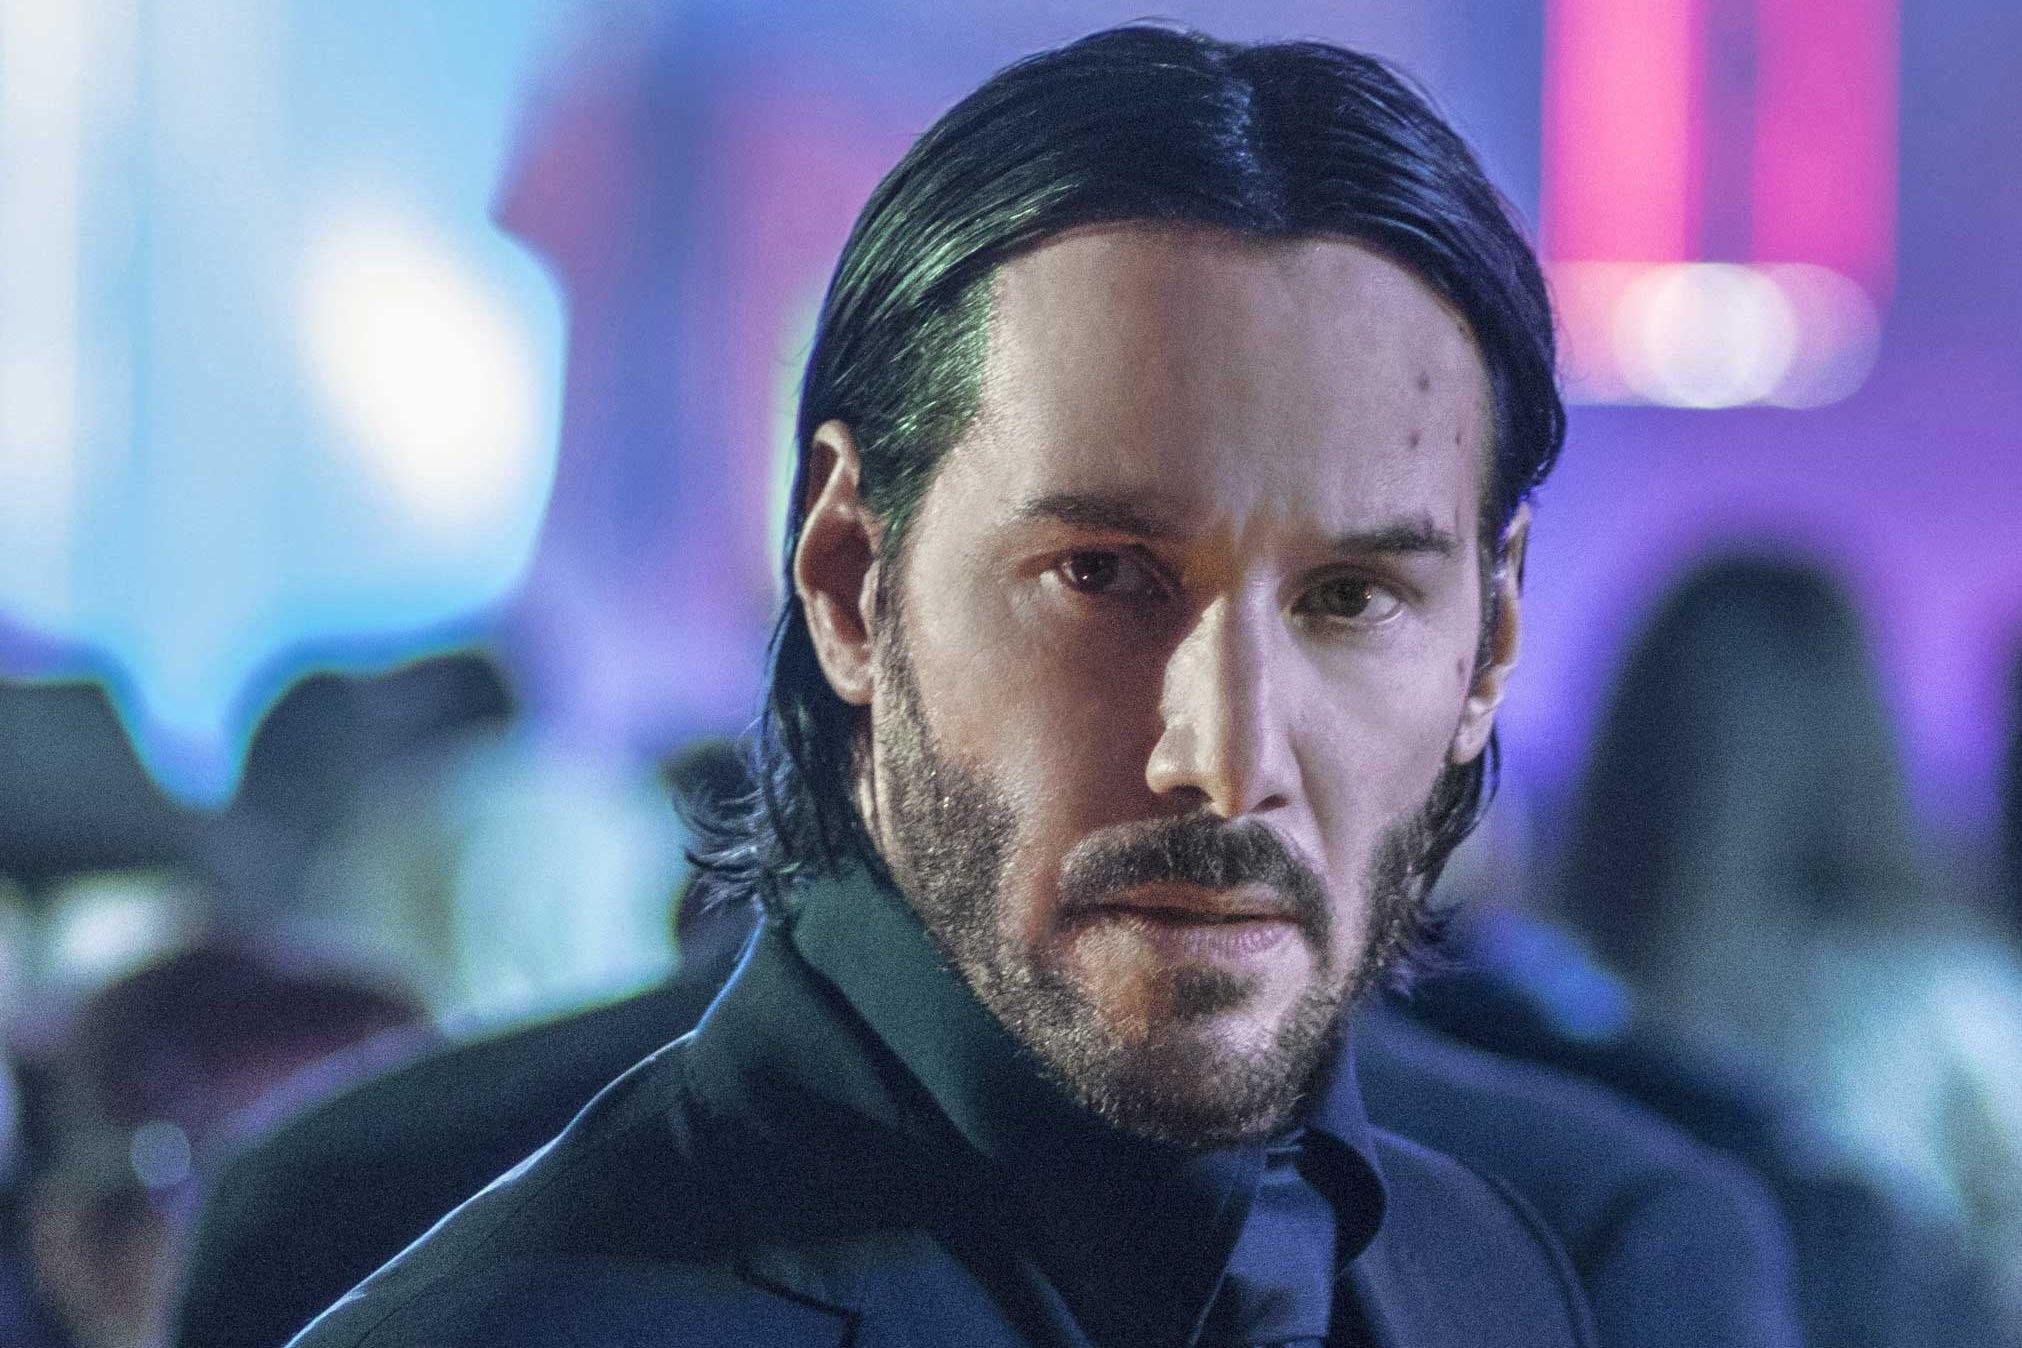 In Chapter 2, retired hit man John Wick (Reeves) heads abroad for another round of grisly vengeance